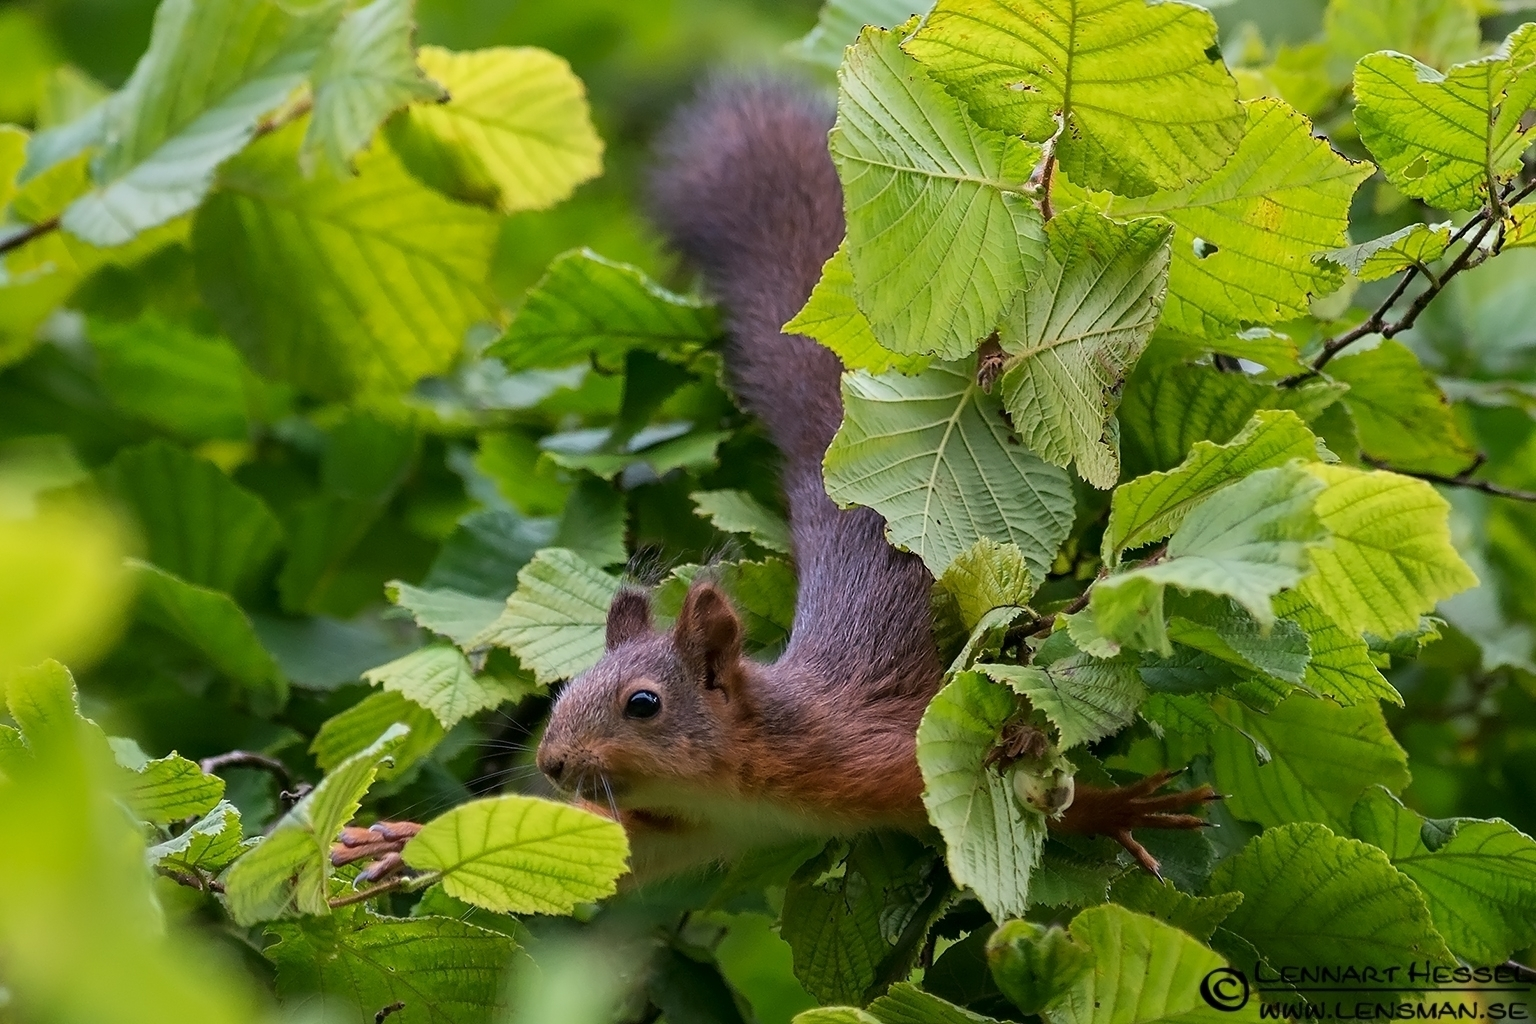 Red squirrel reaching out